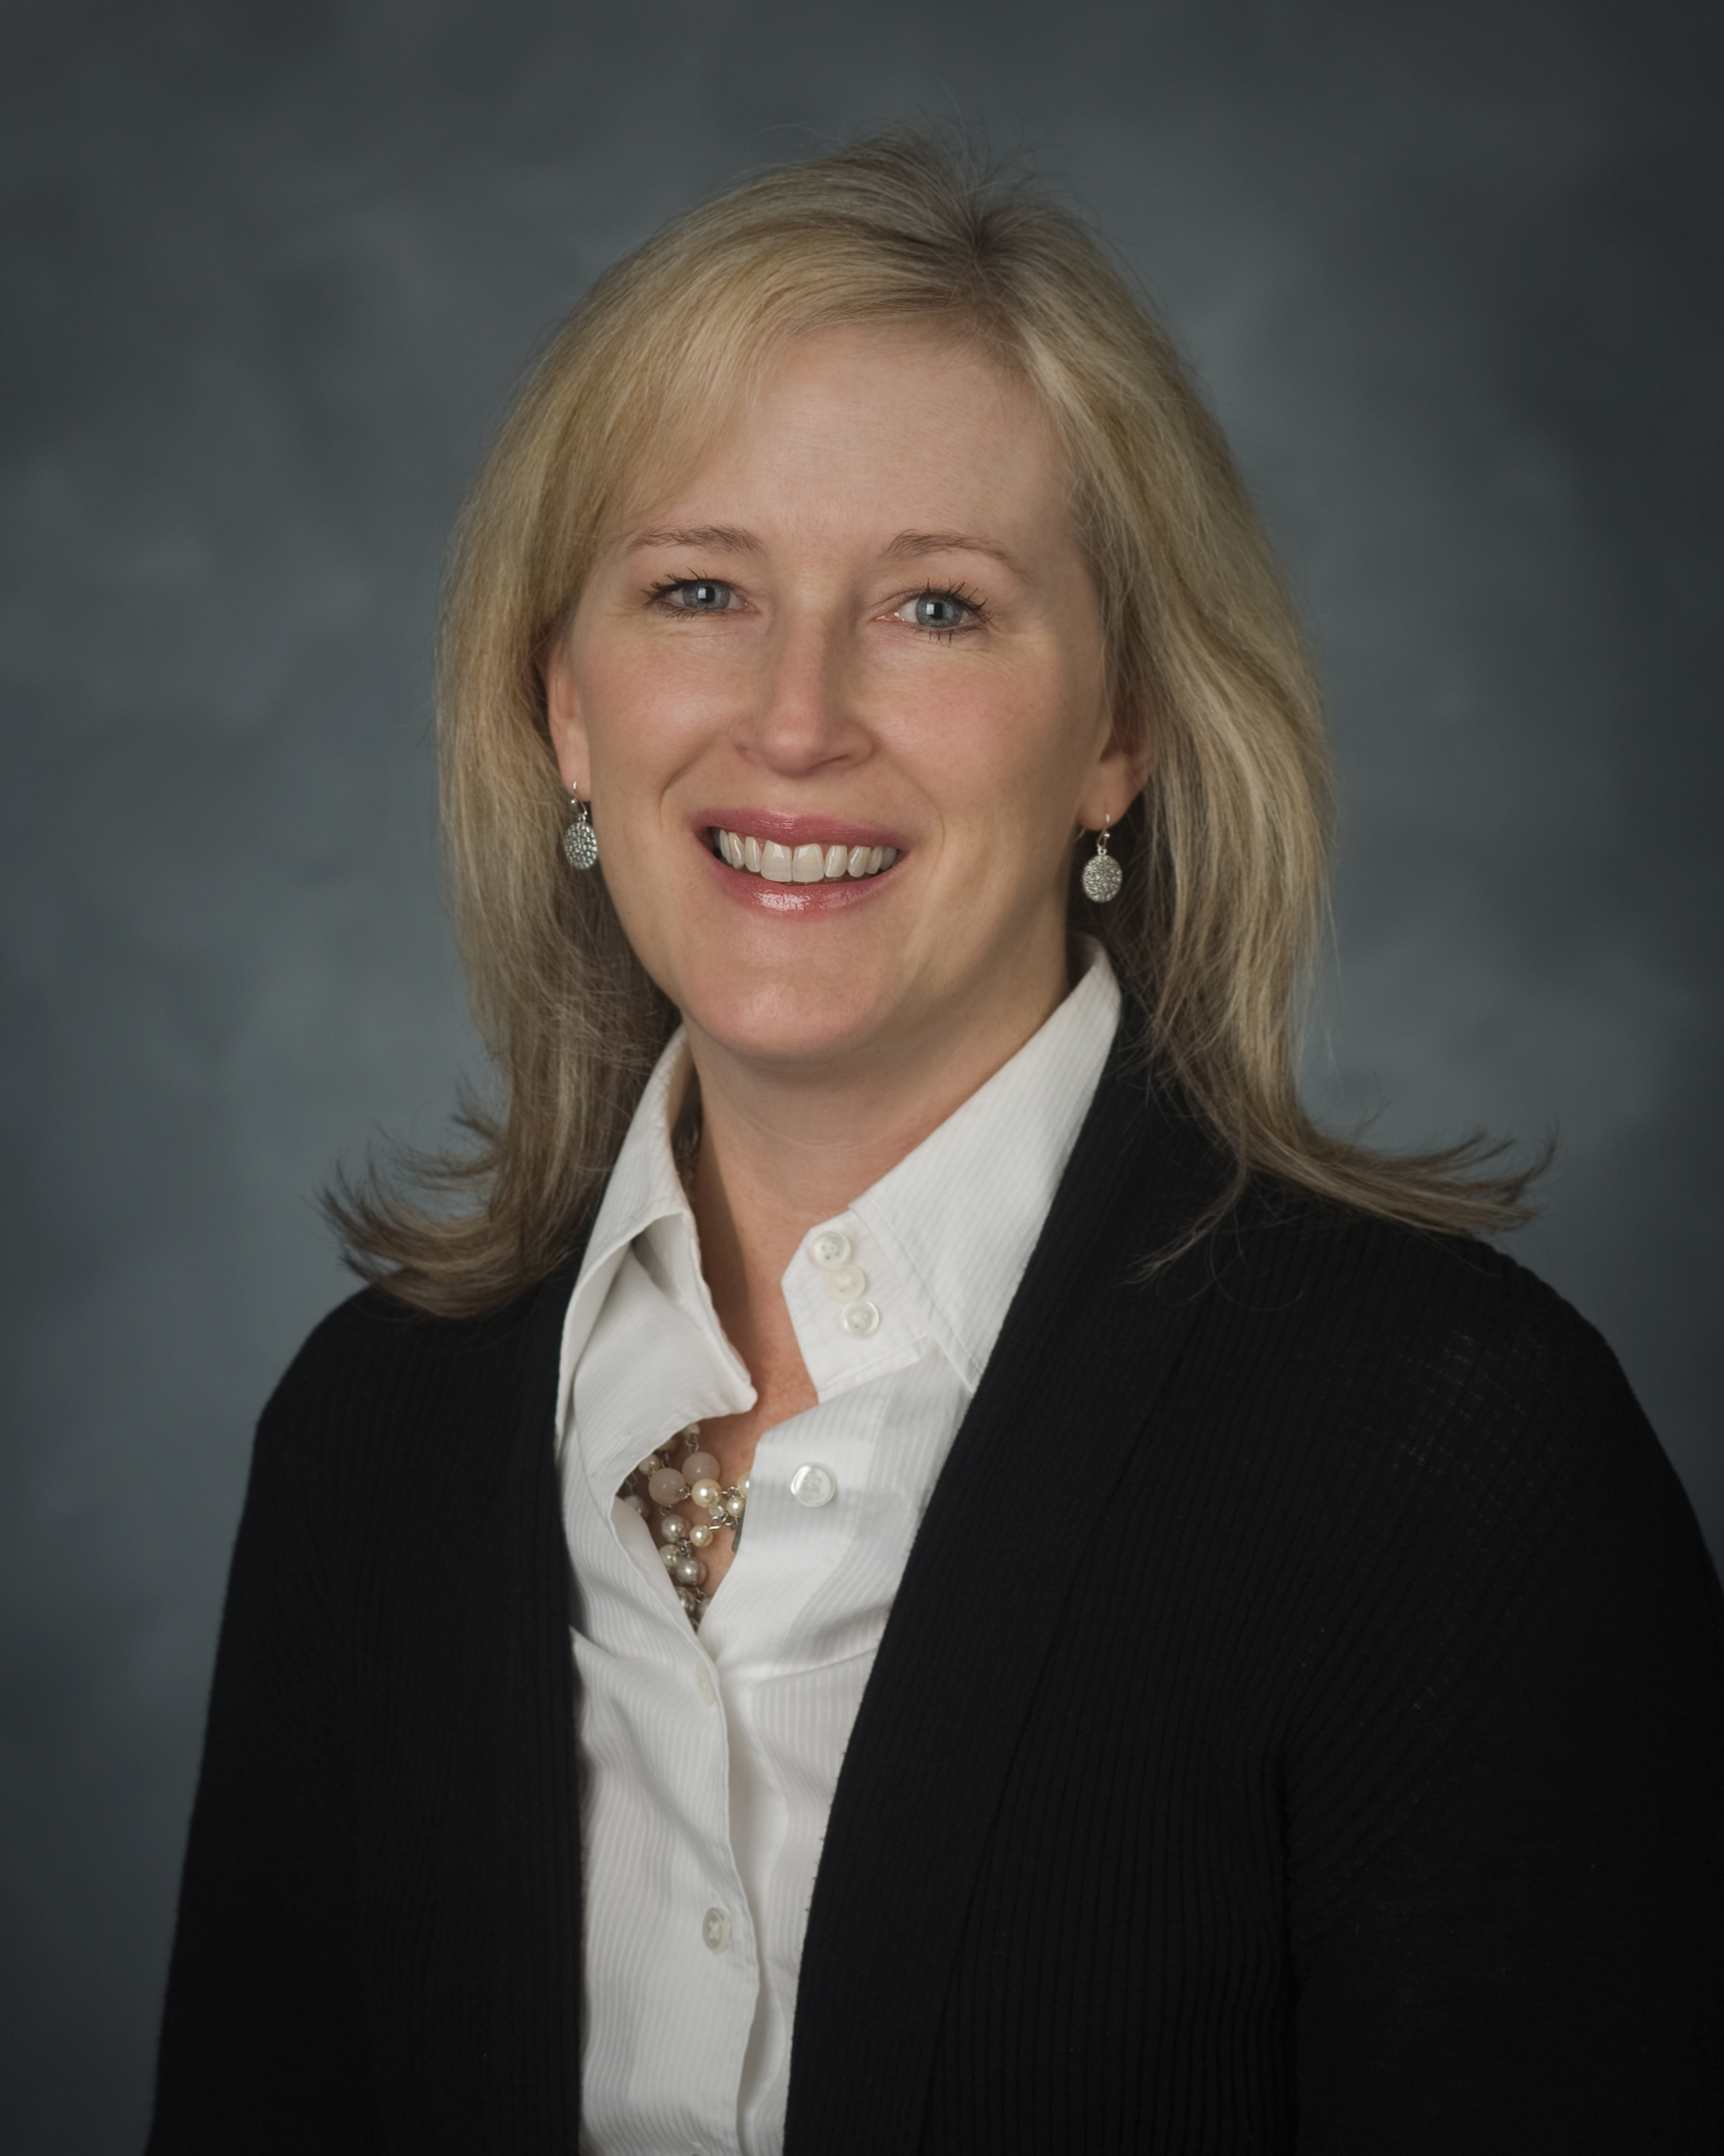 This is an image of Heidi Lohmann Vice President of Sales